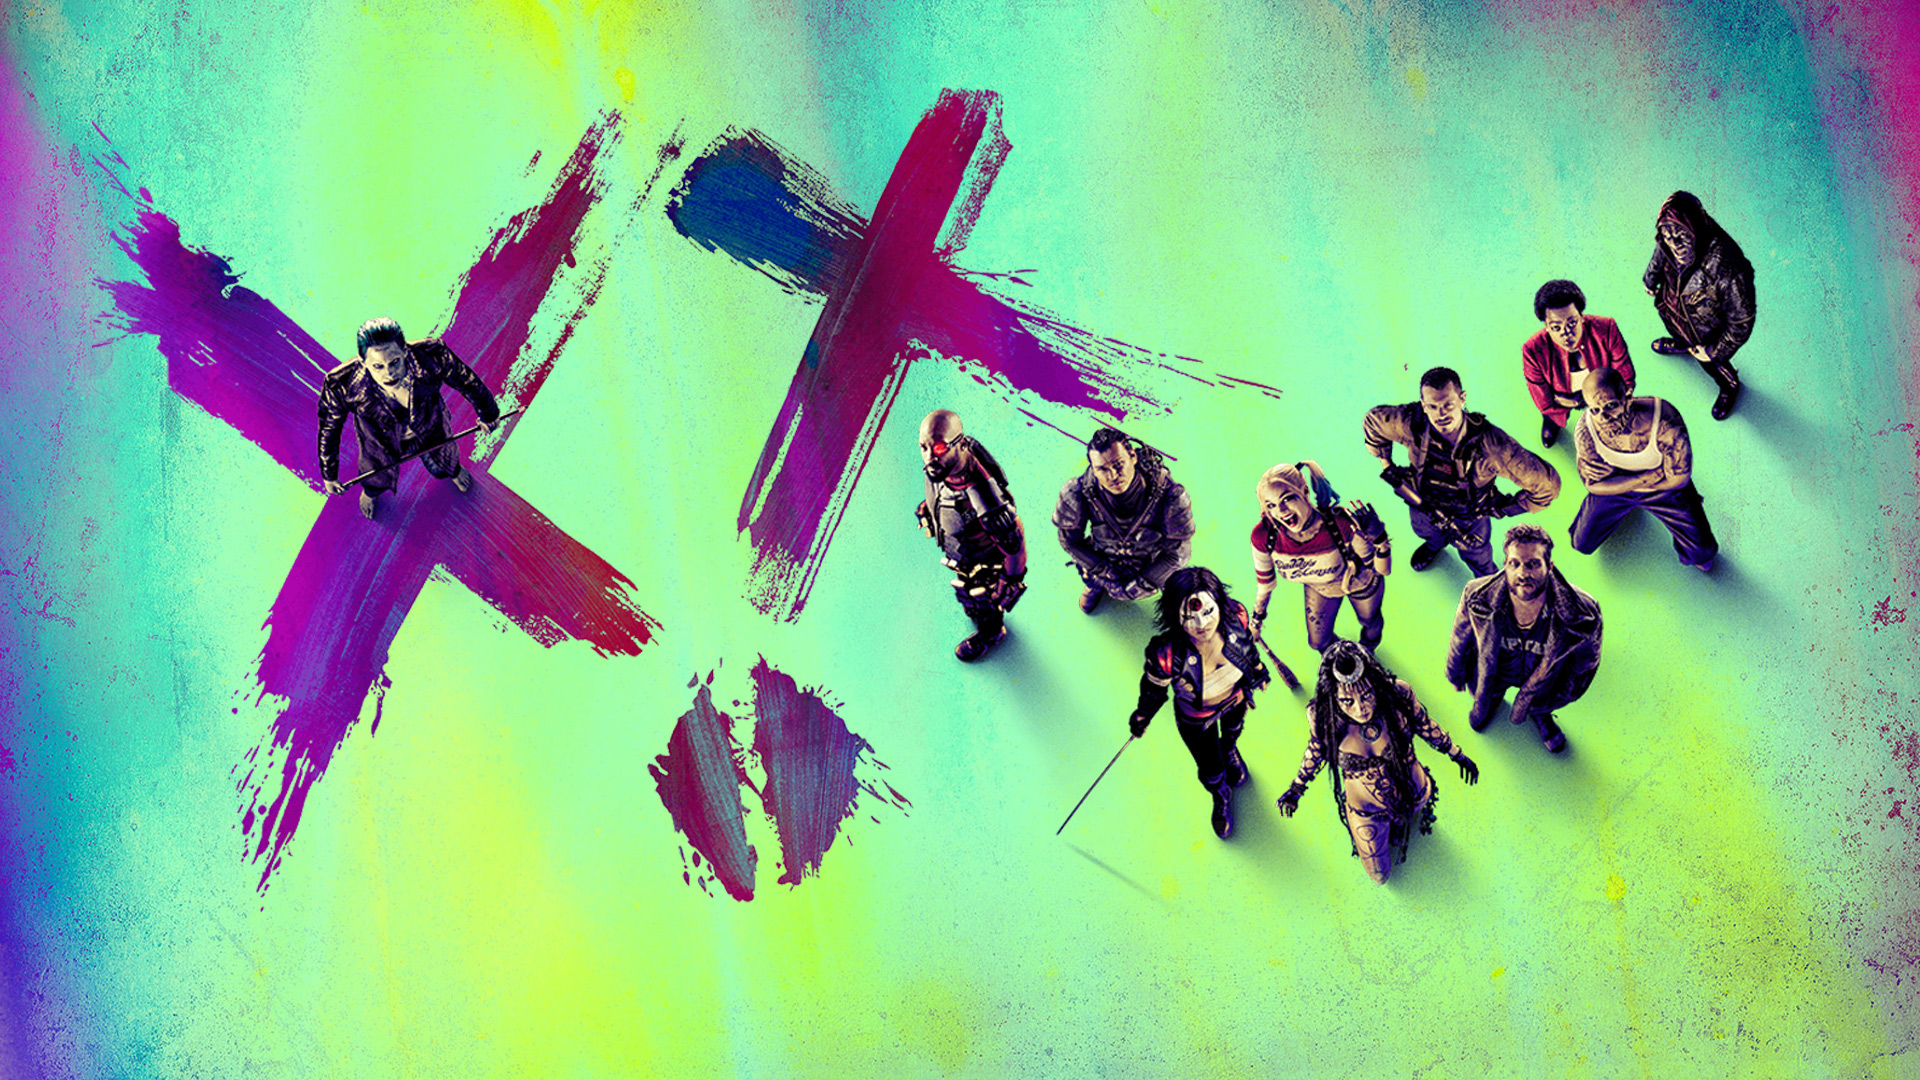 suicide squad wide wallpapers - photo #38